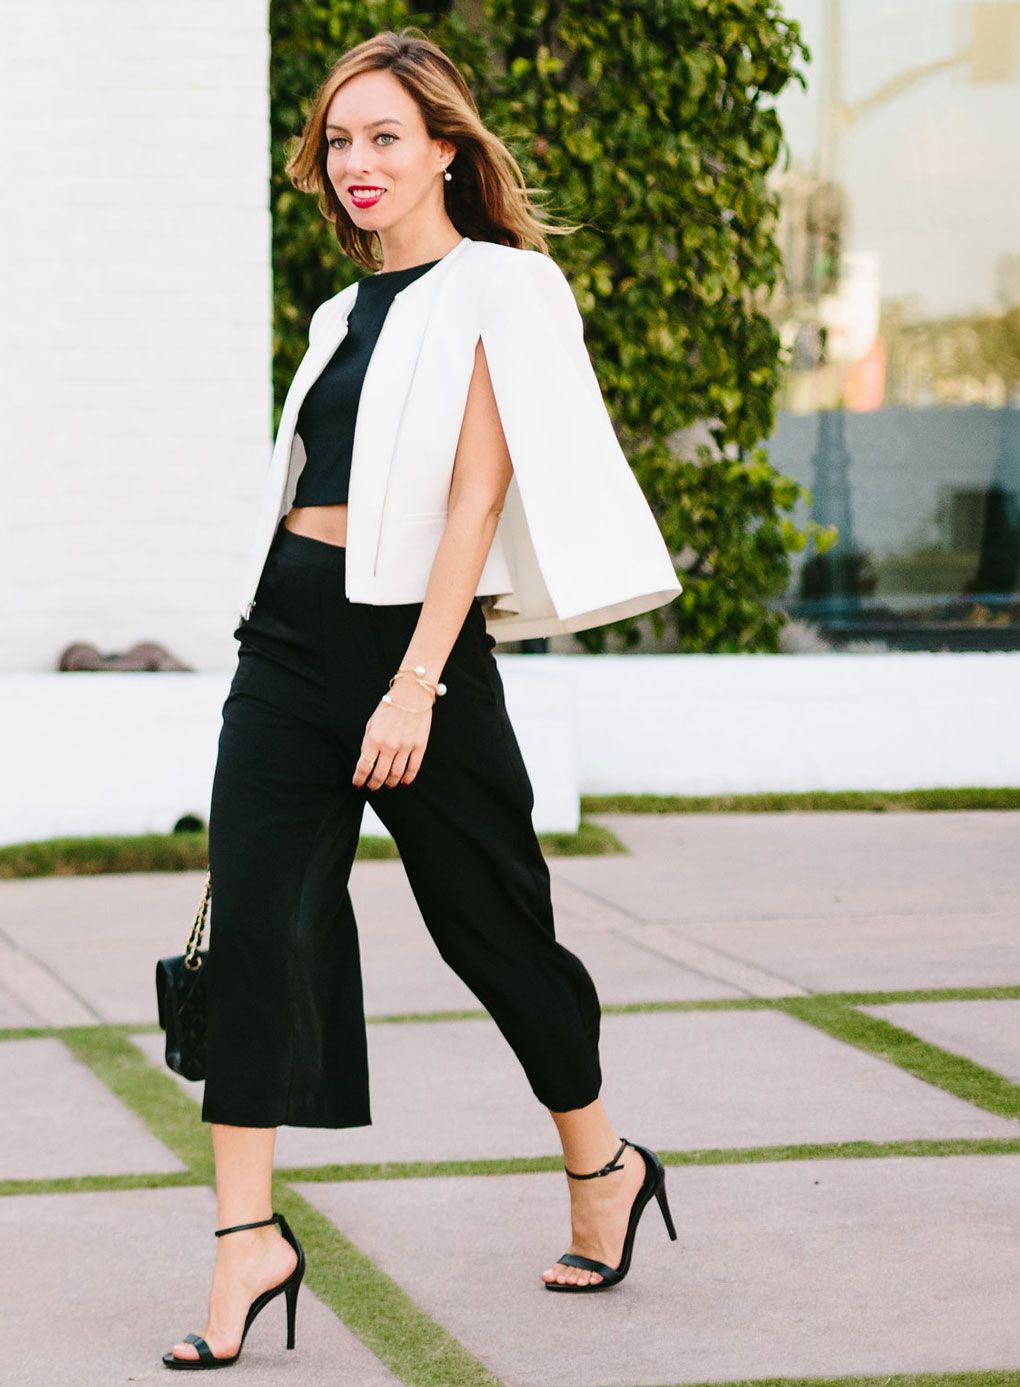 Sydne Style - Los Angeles Fashion writer and People StyleWatch contributor Sydne Summer shows how to wear a white cape over a black crop top and culottes.